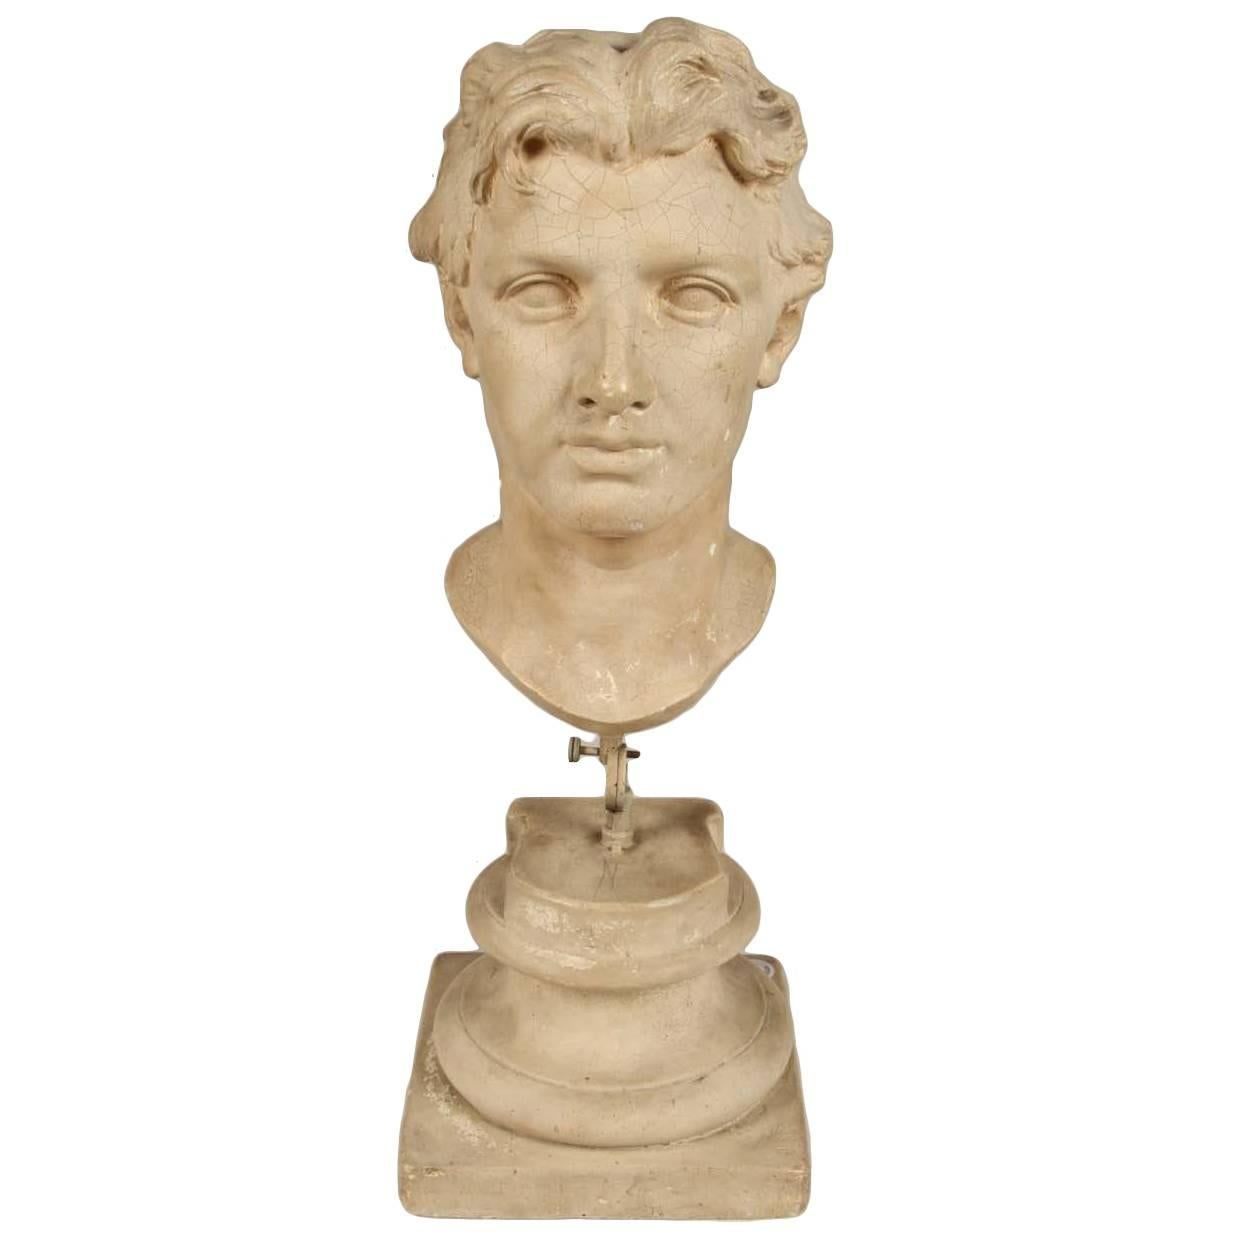 Plaster Bust of a Man on Stand